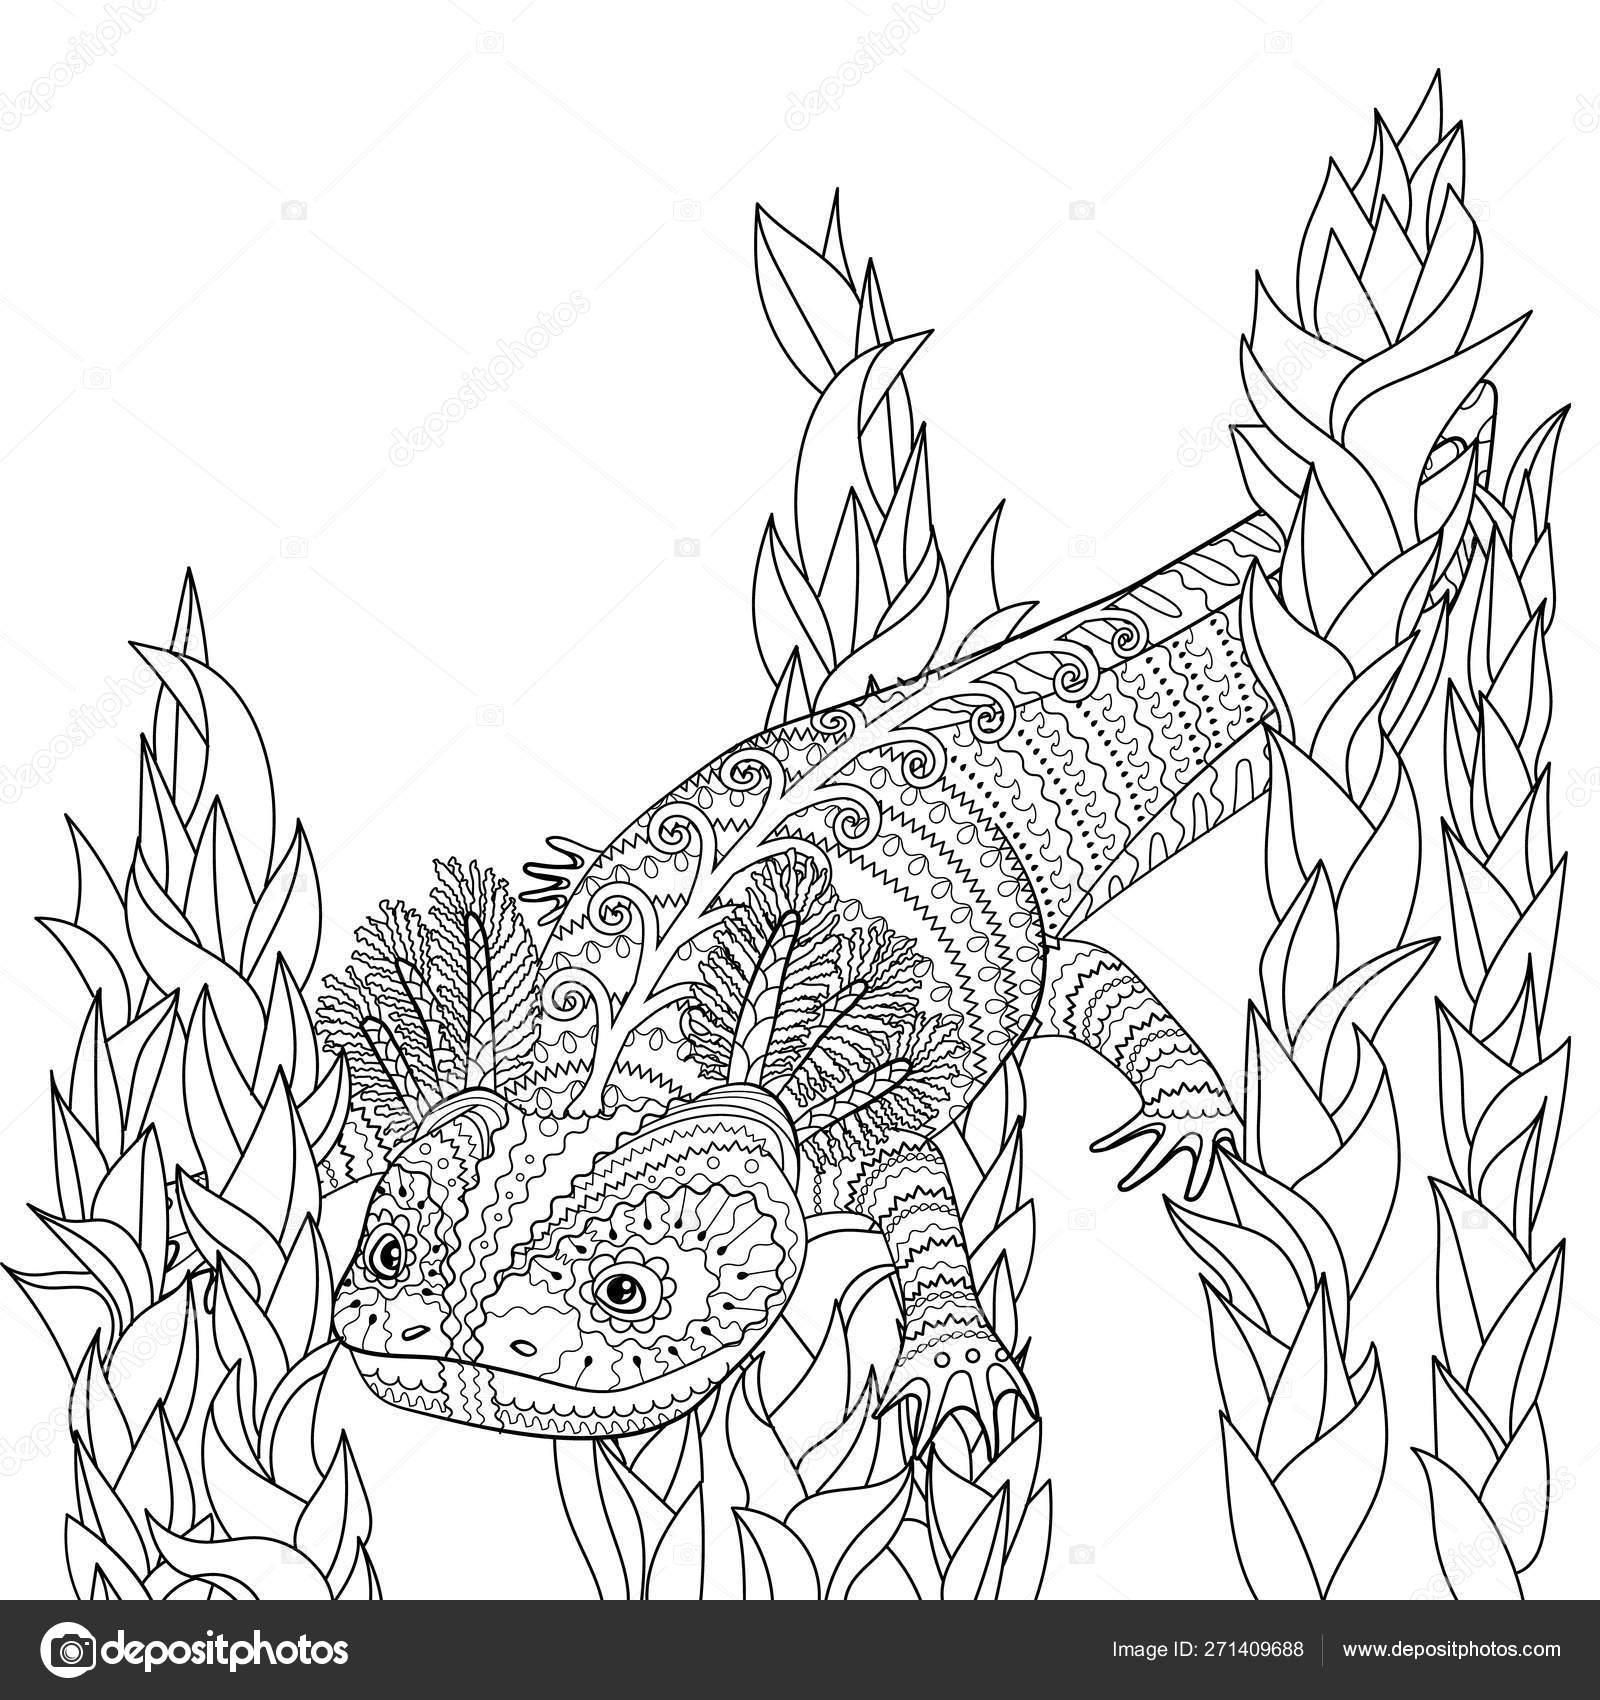 38 Axolotl Coloring Page Coloring Pages Animals Black And White Black And White Illustration